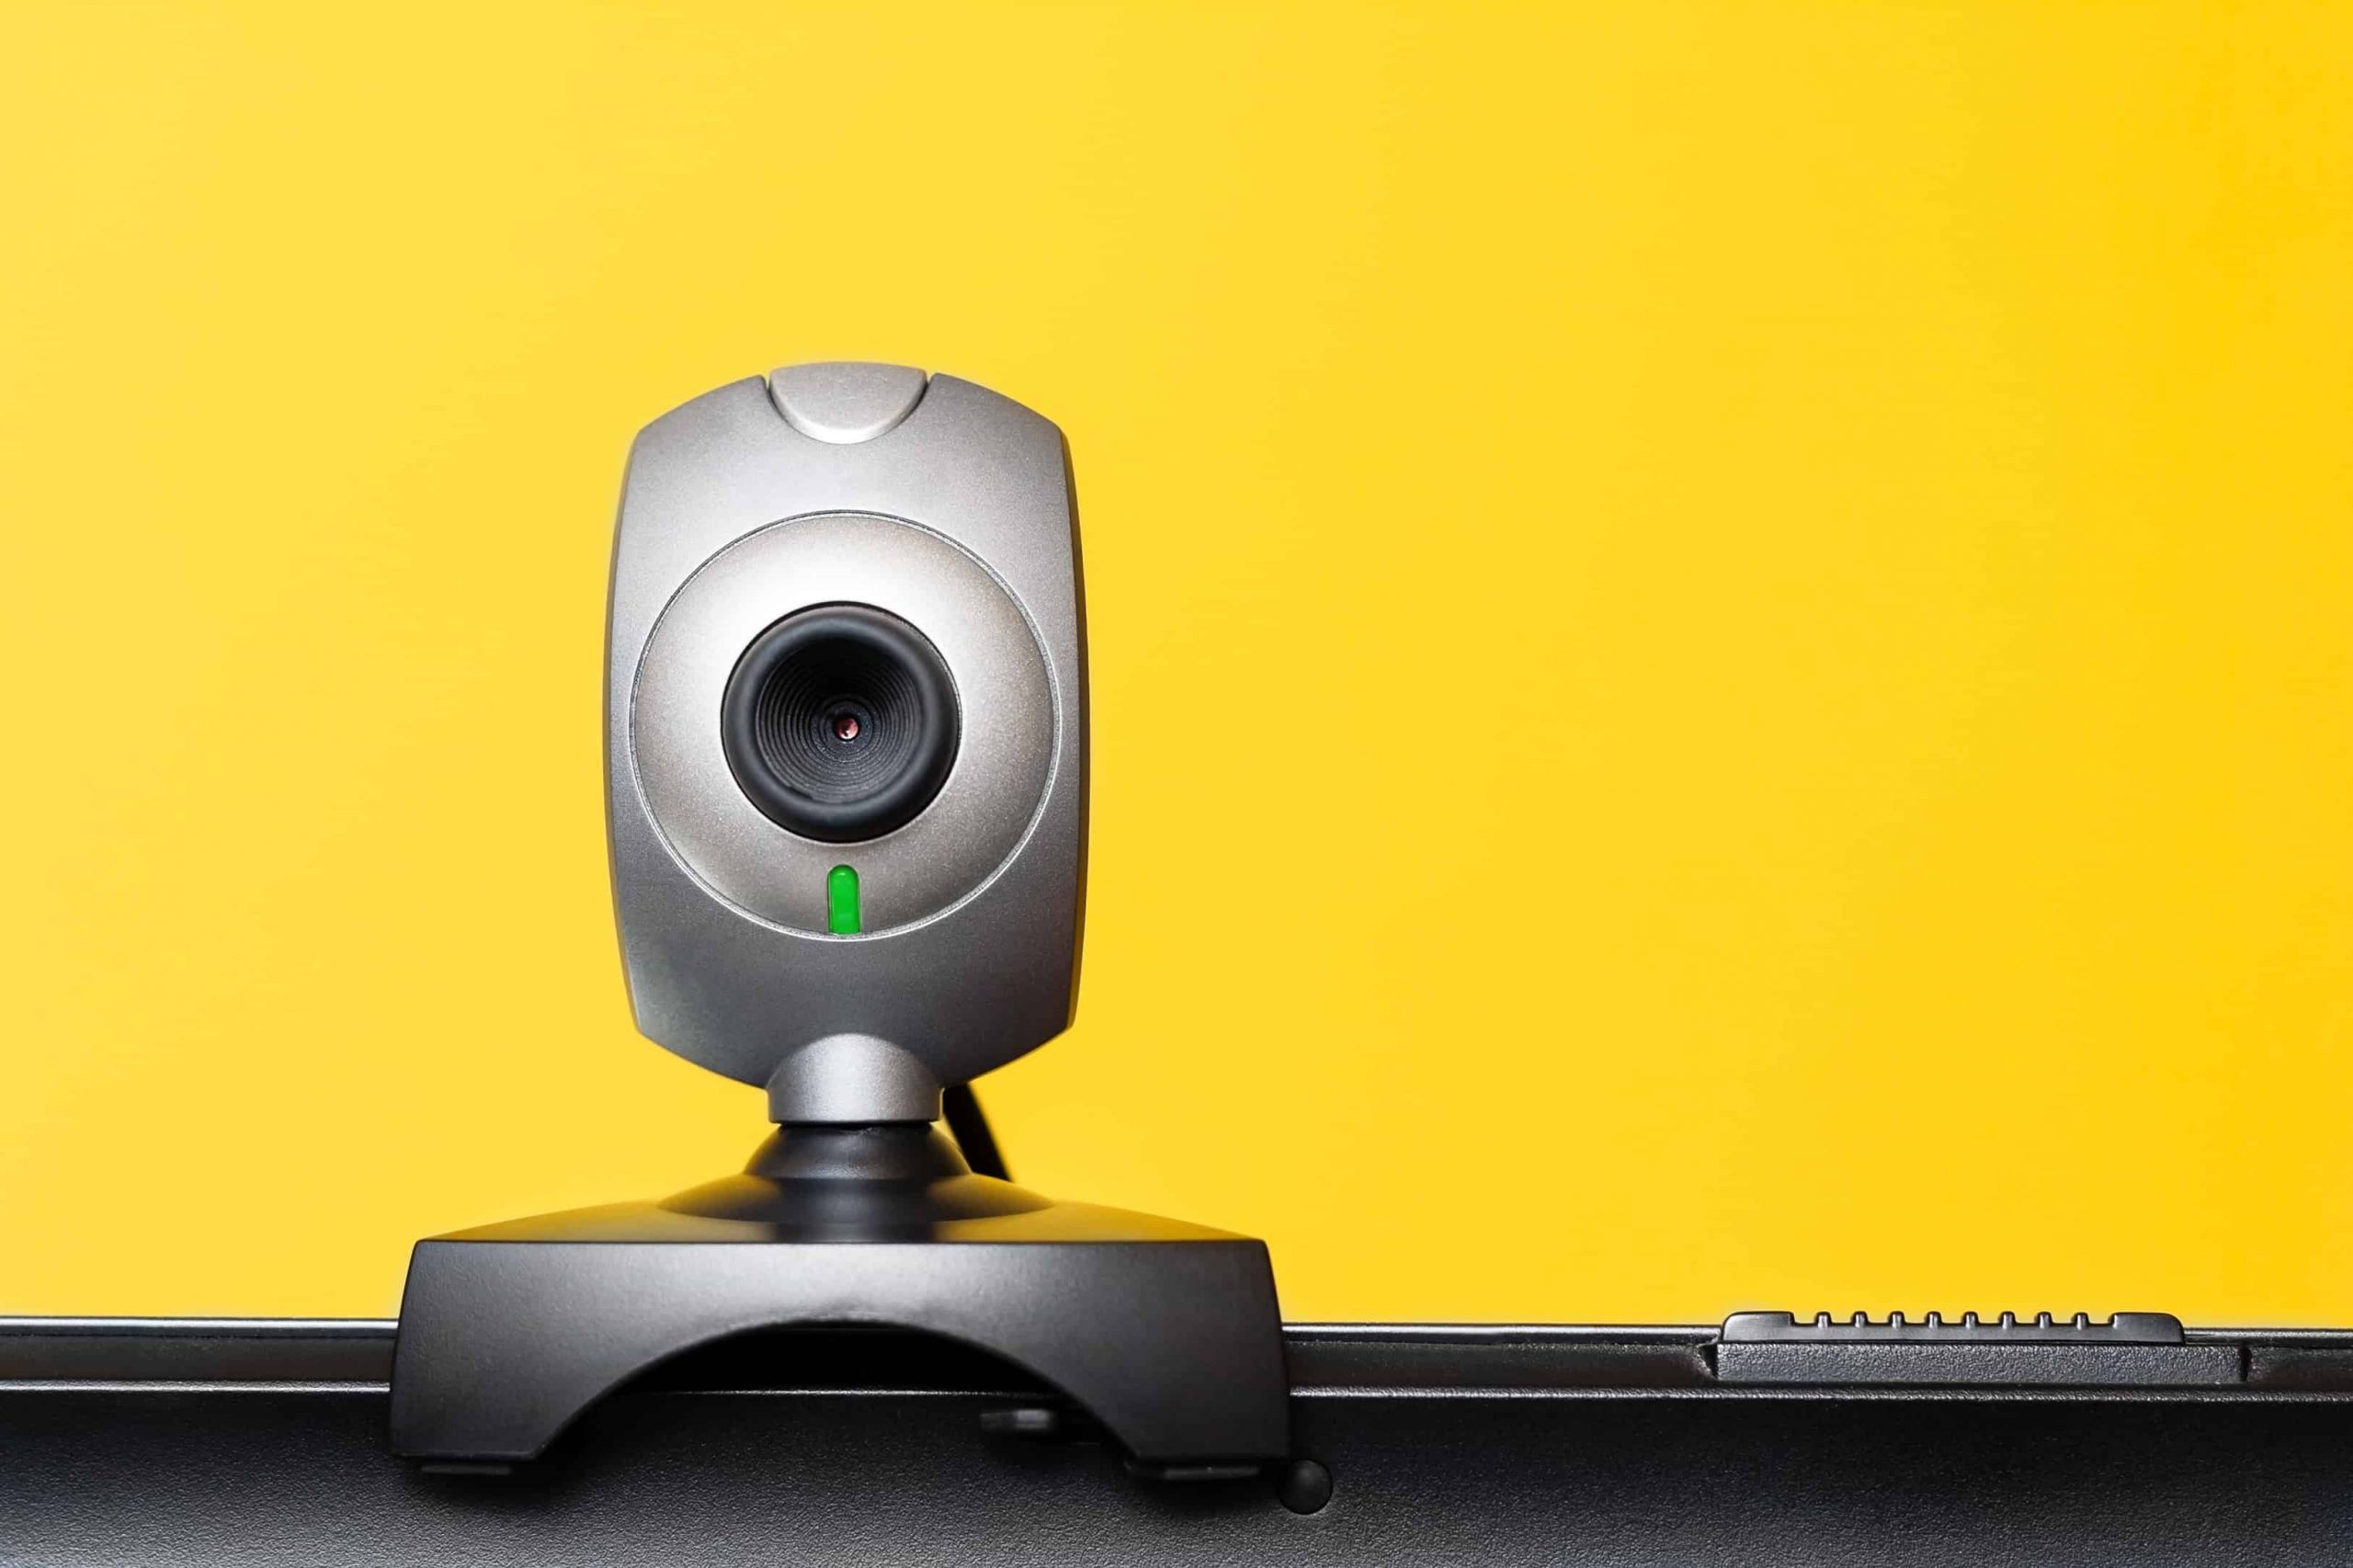 Best Webcam 2021: Shopping Guide & Review